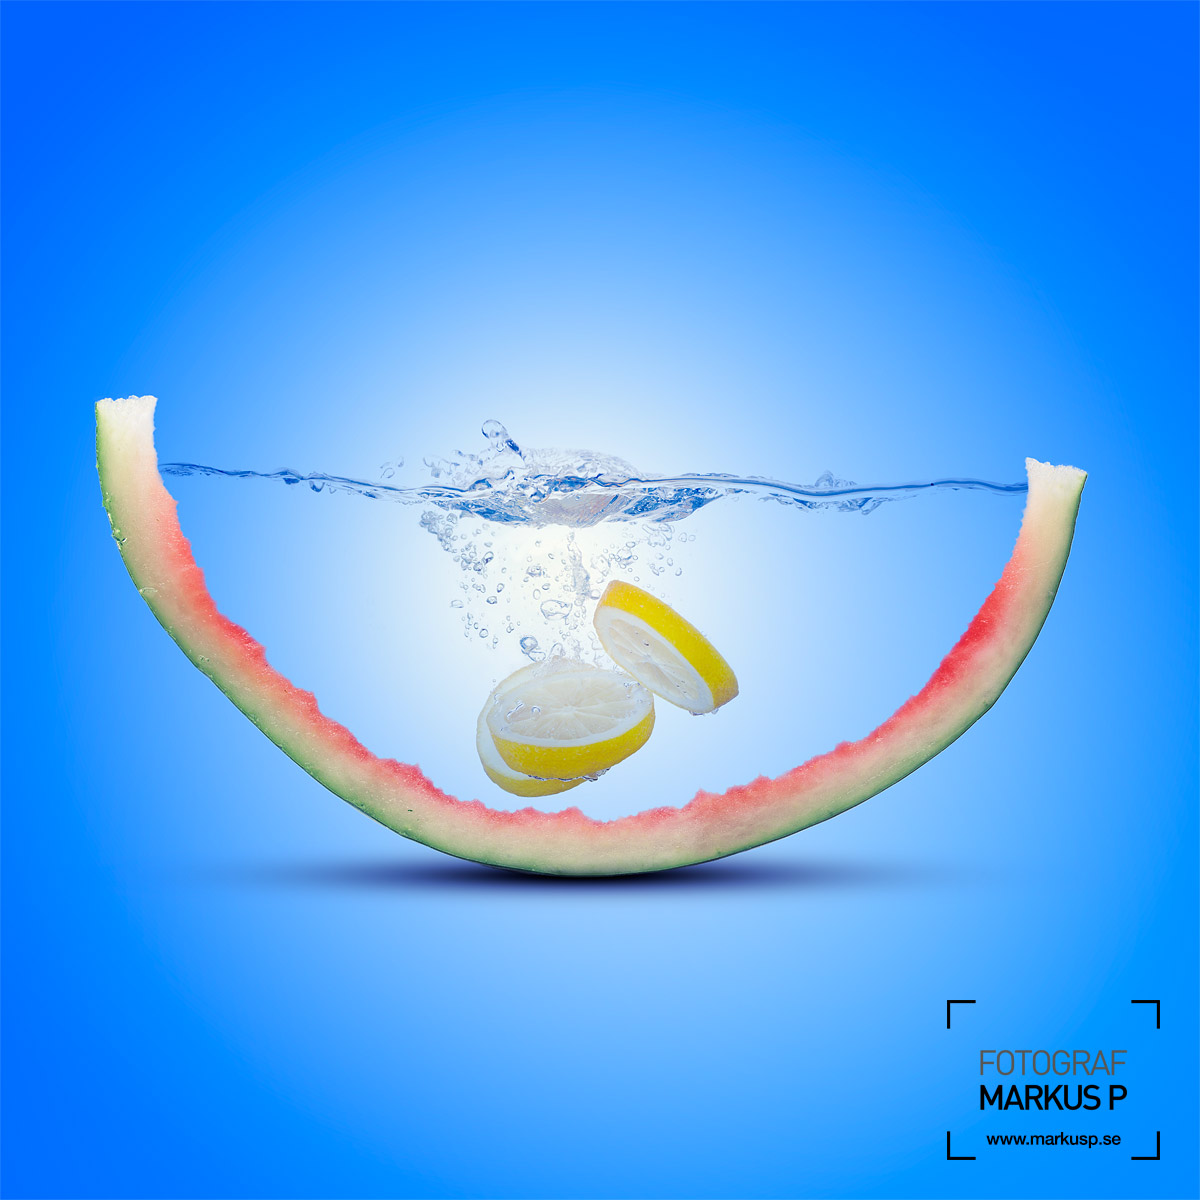 Water melon photo compositing